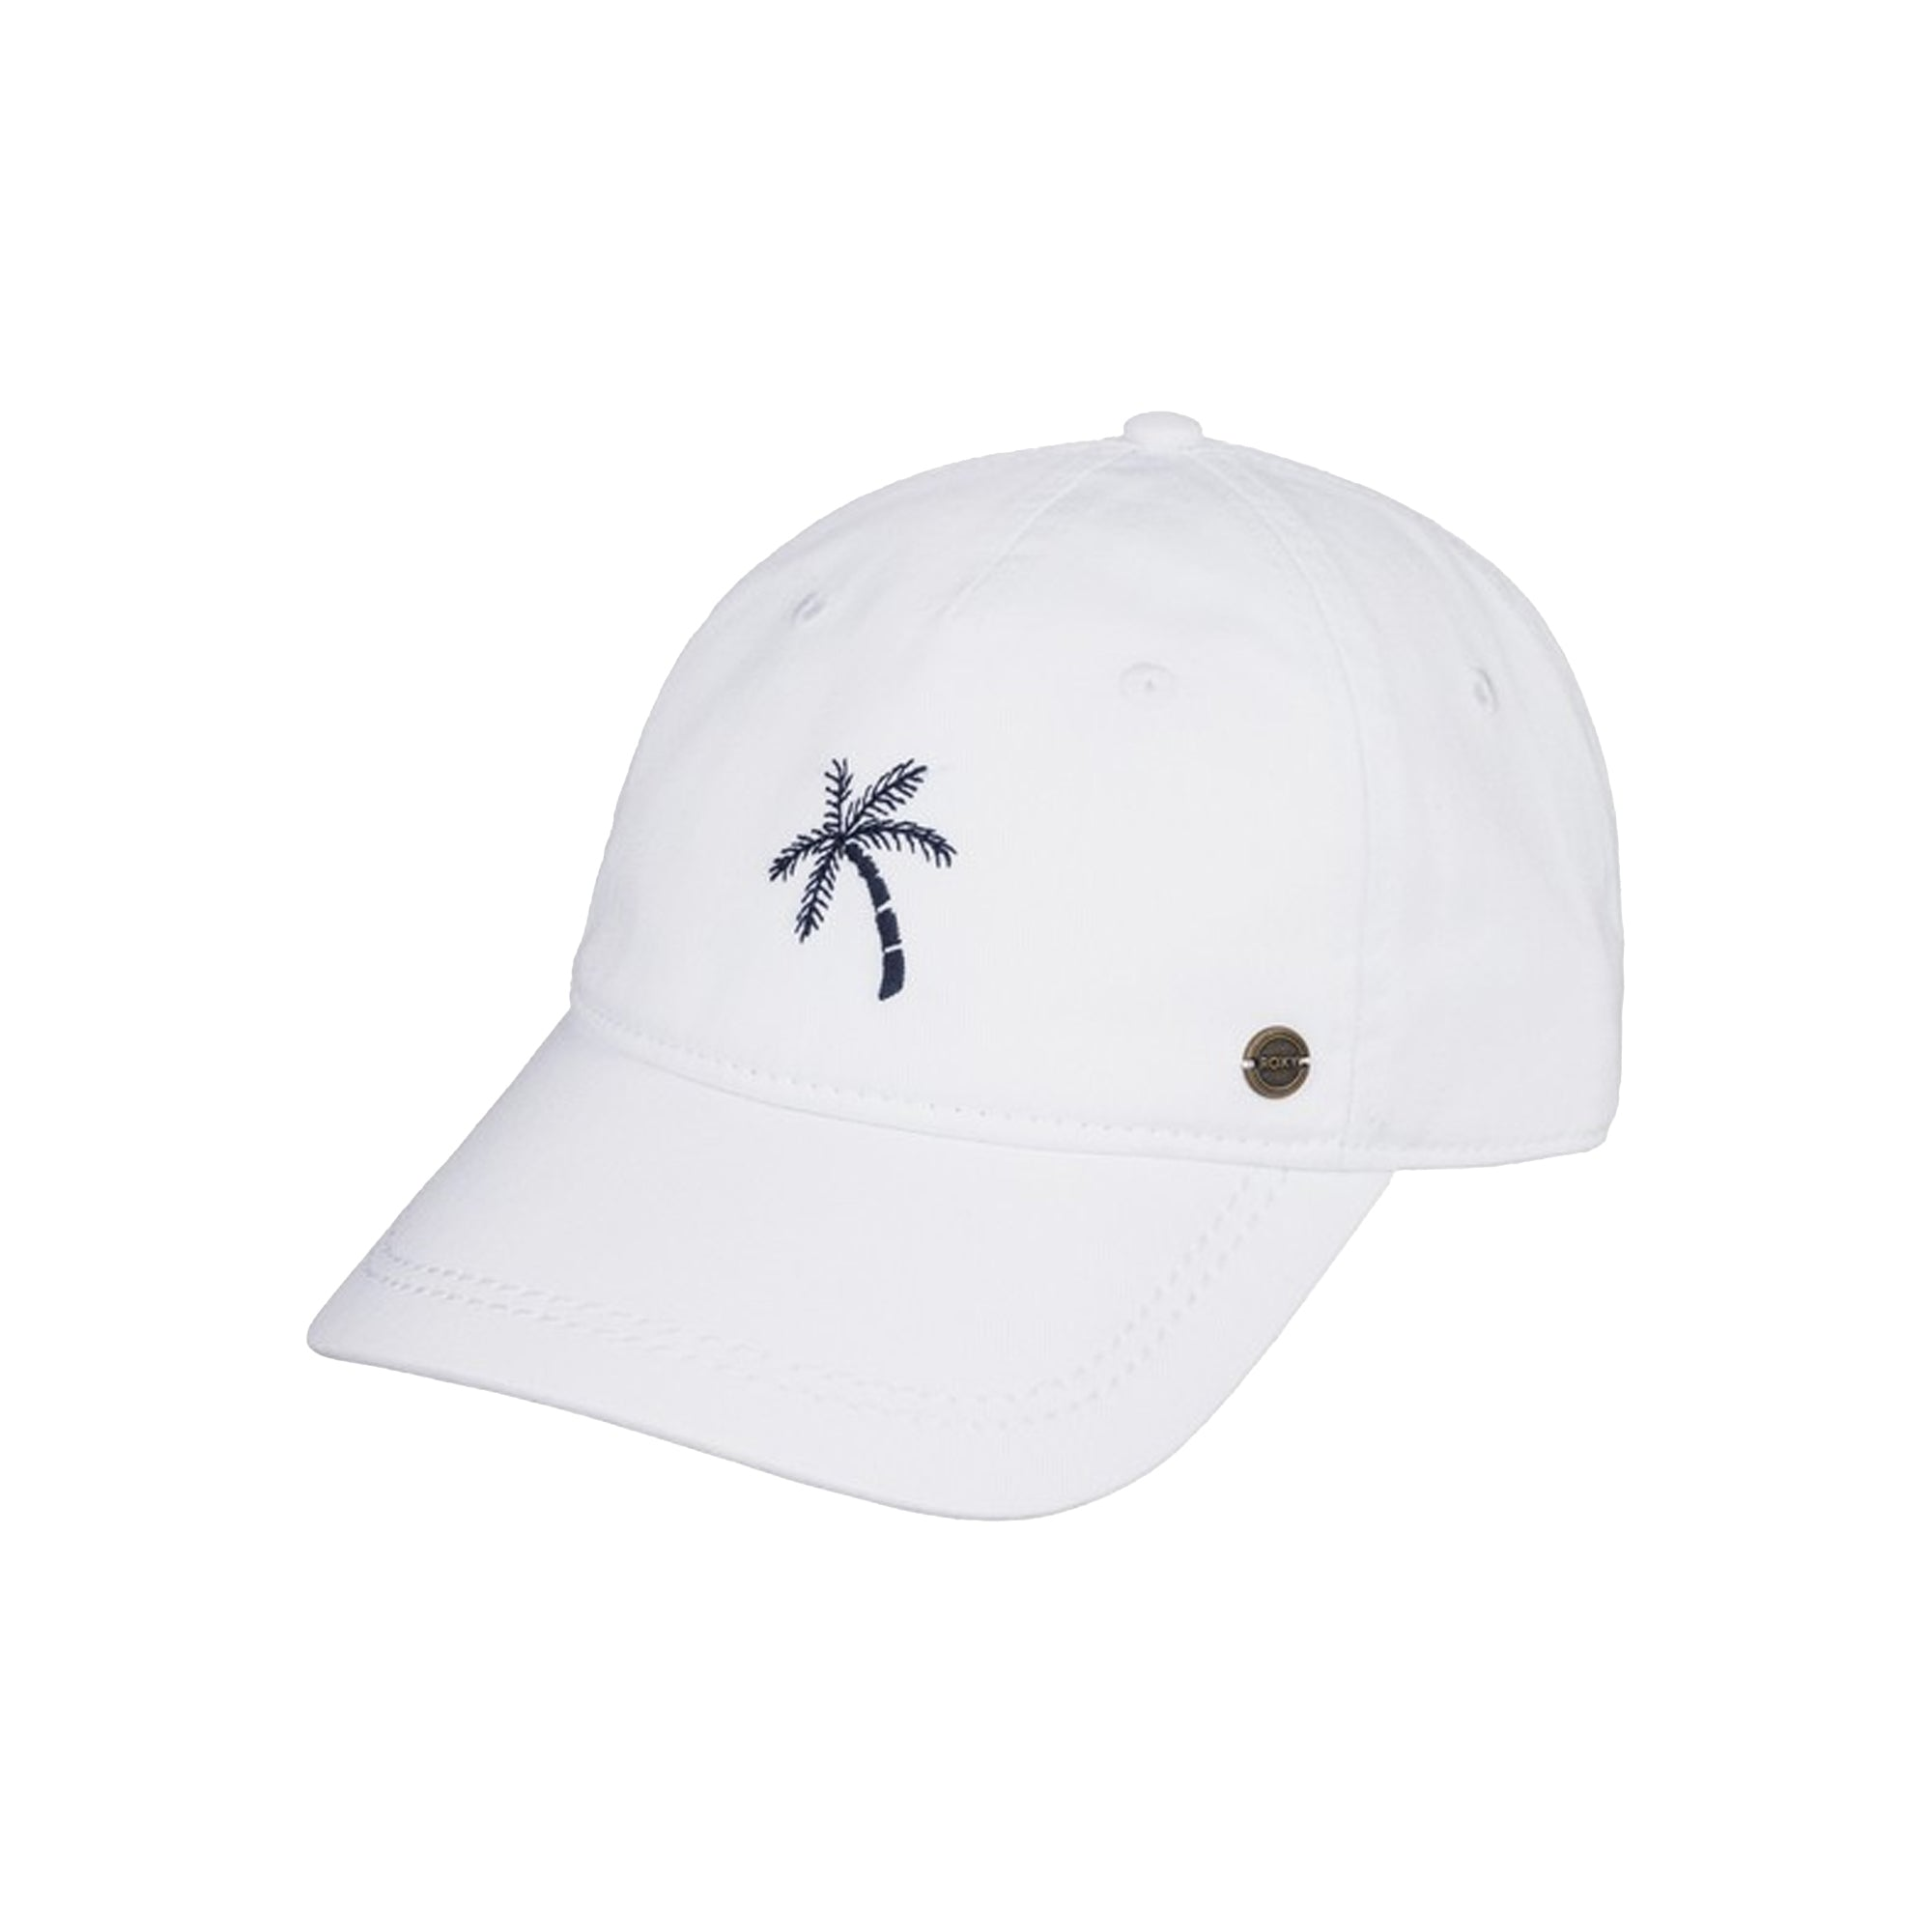 Roxy Next Level Women's Baseball Hat - Snow White